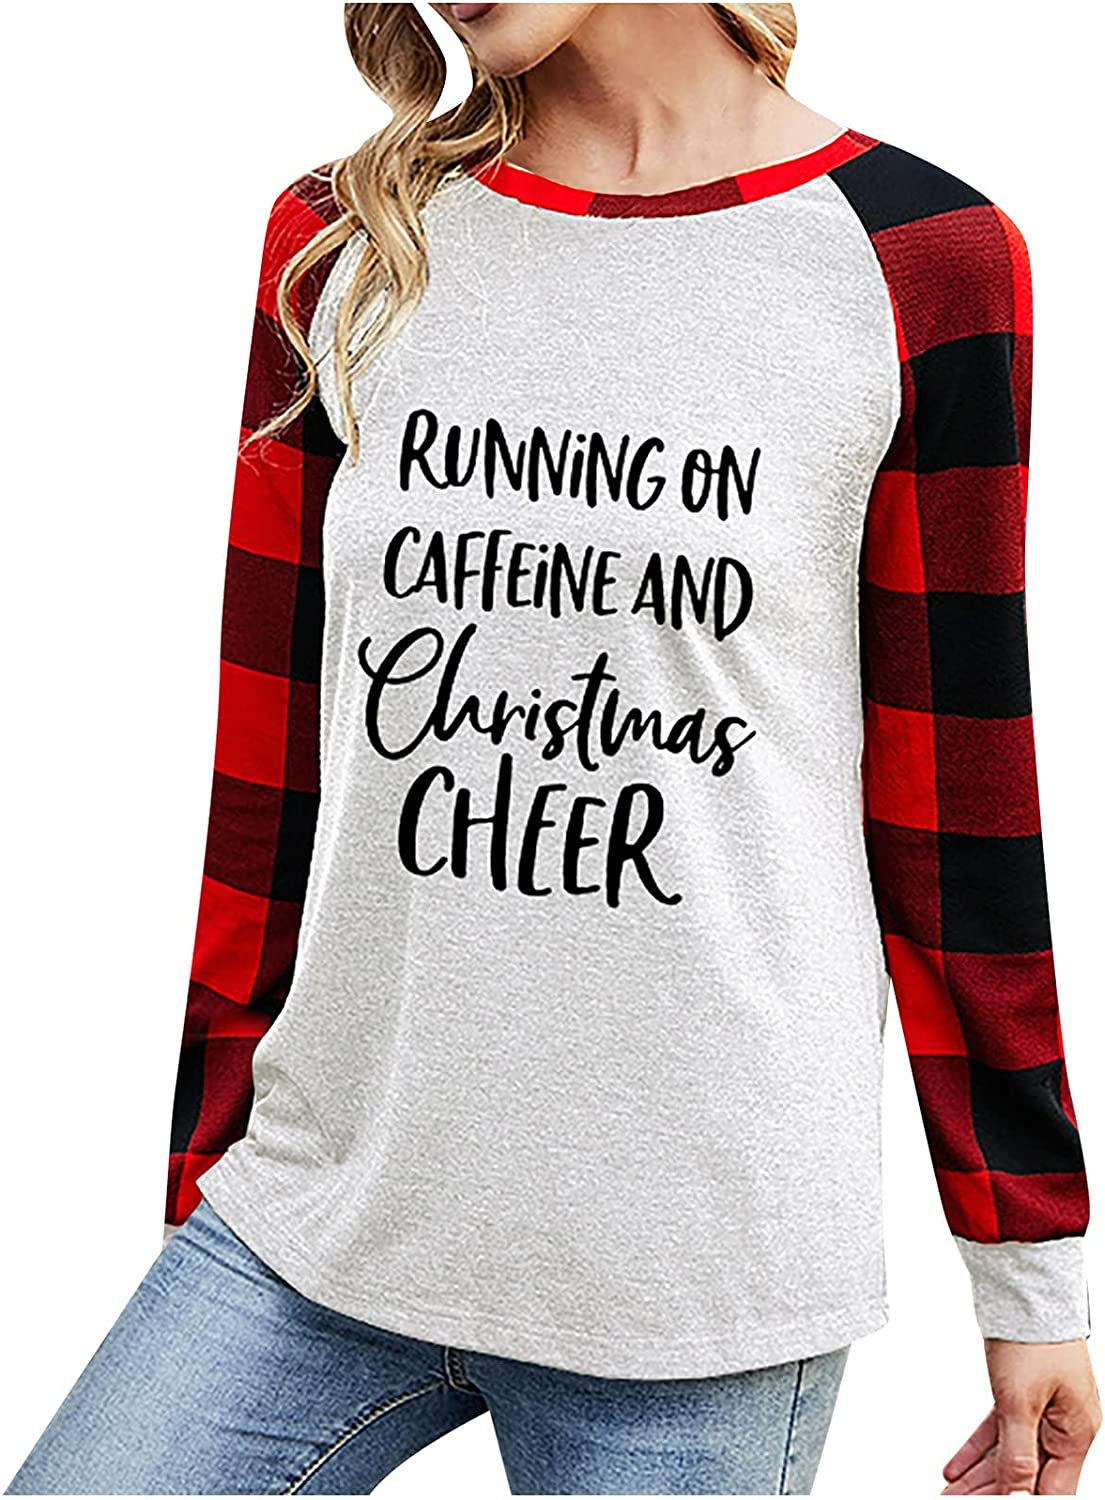 Women Pullover Tops Plaid Splicing Printed Long Sleeve Round Neck Casual Loose Base Sweatshirts Autumn Comfy Blouses